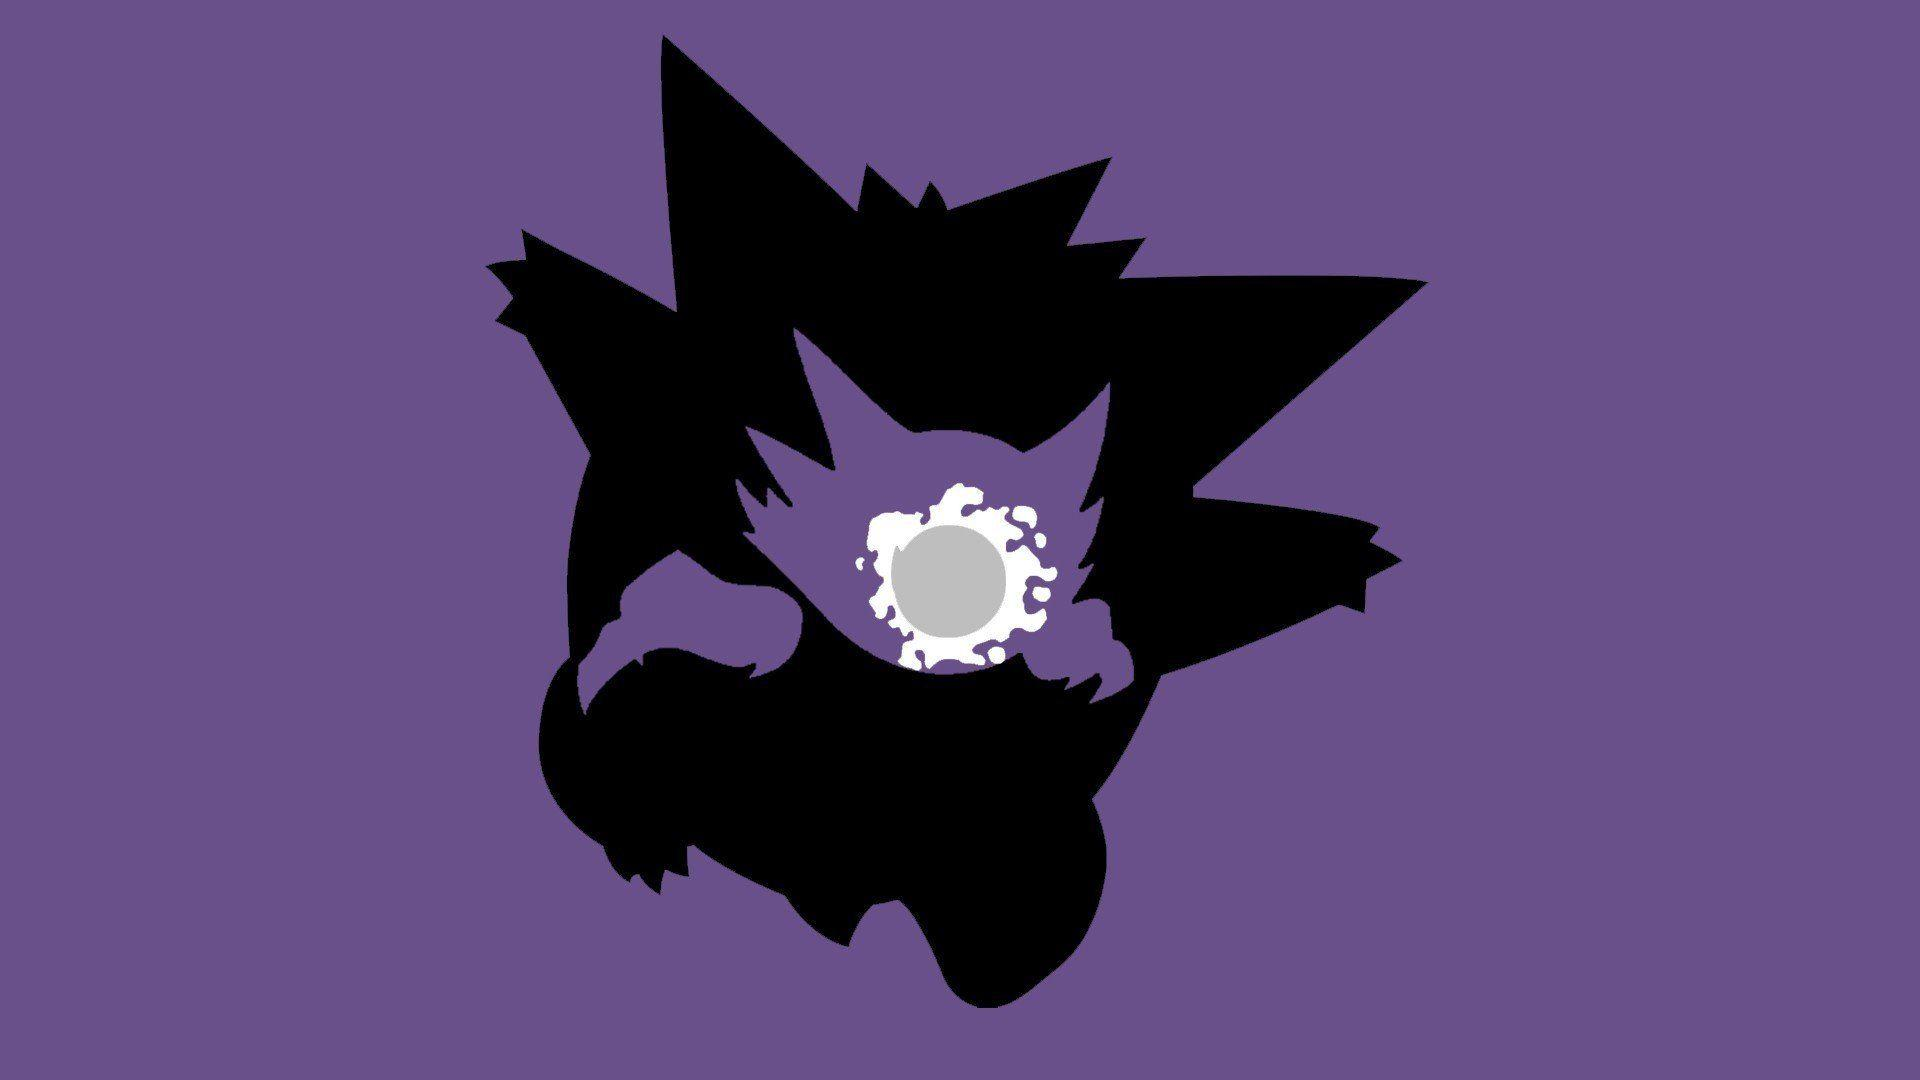 Pokemon, Ghastly, Haunter, Gengar, Simple background, Minimalism ...